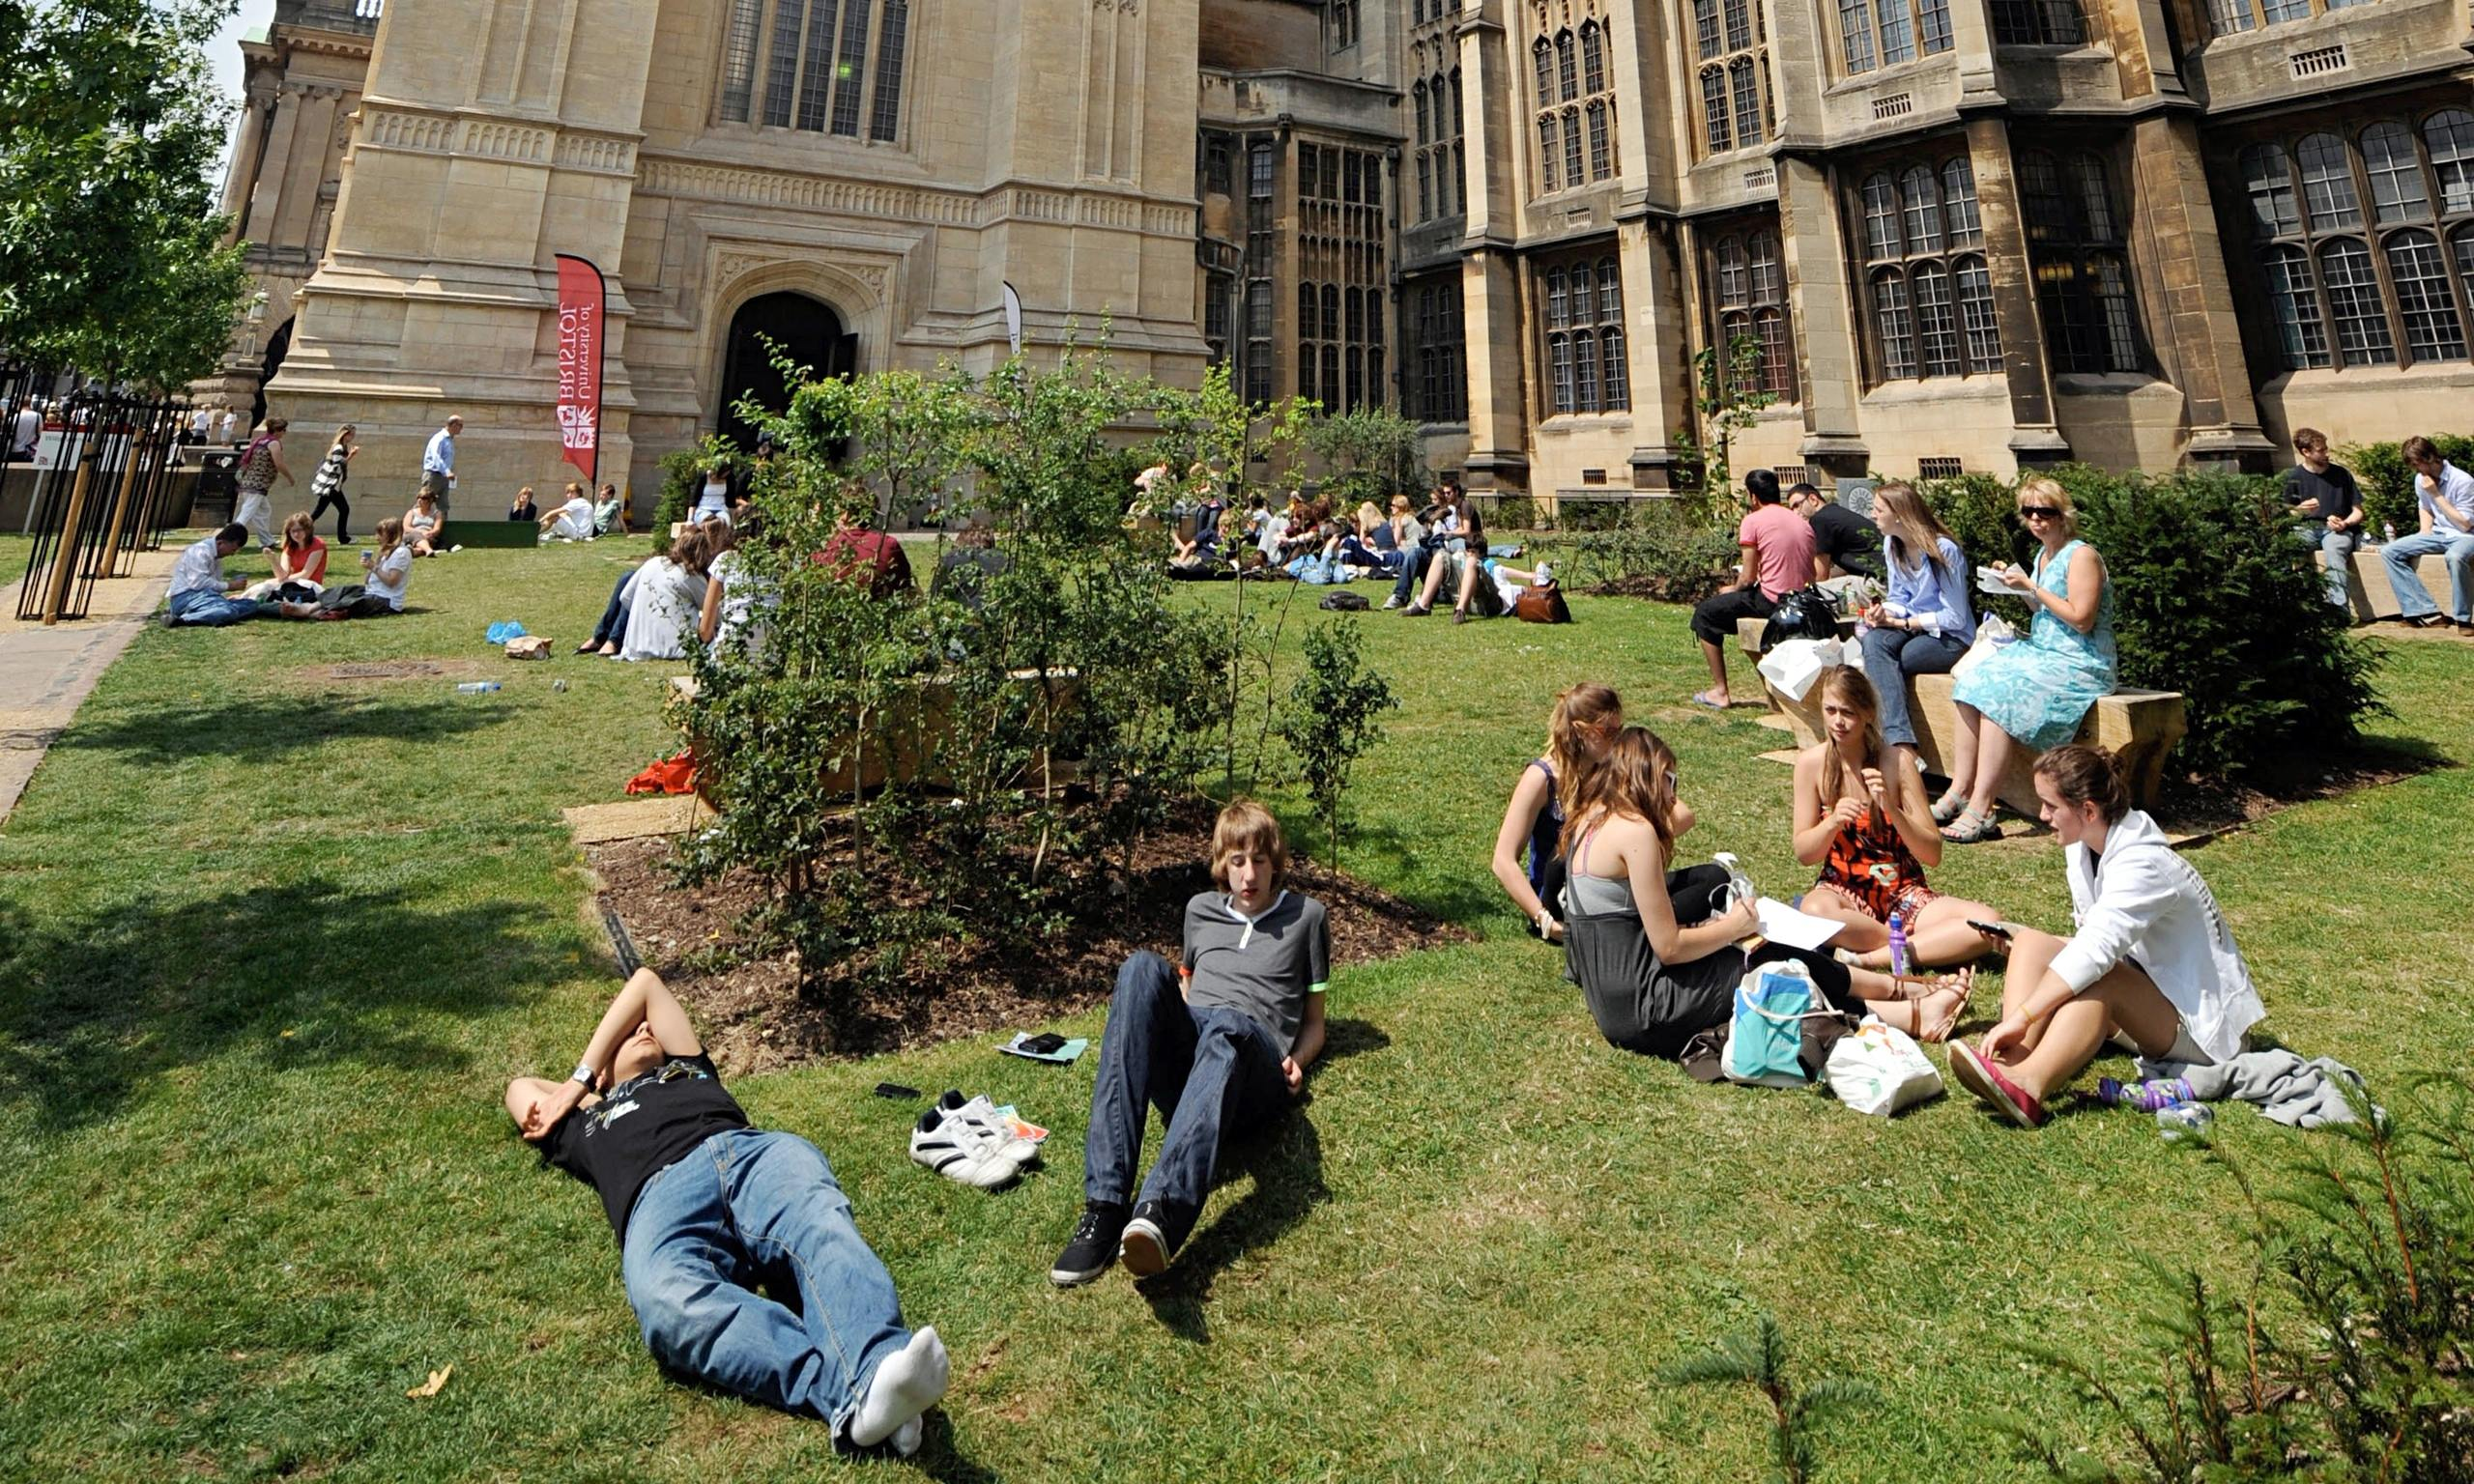 University applications in UK up 4%